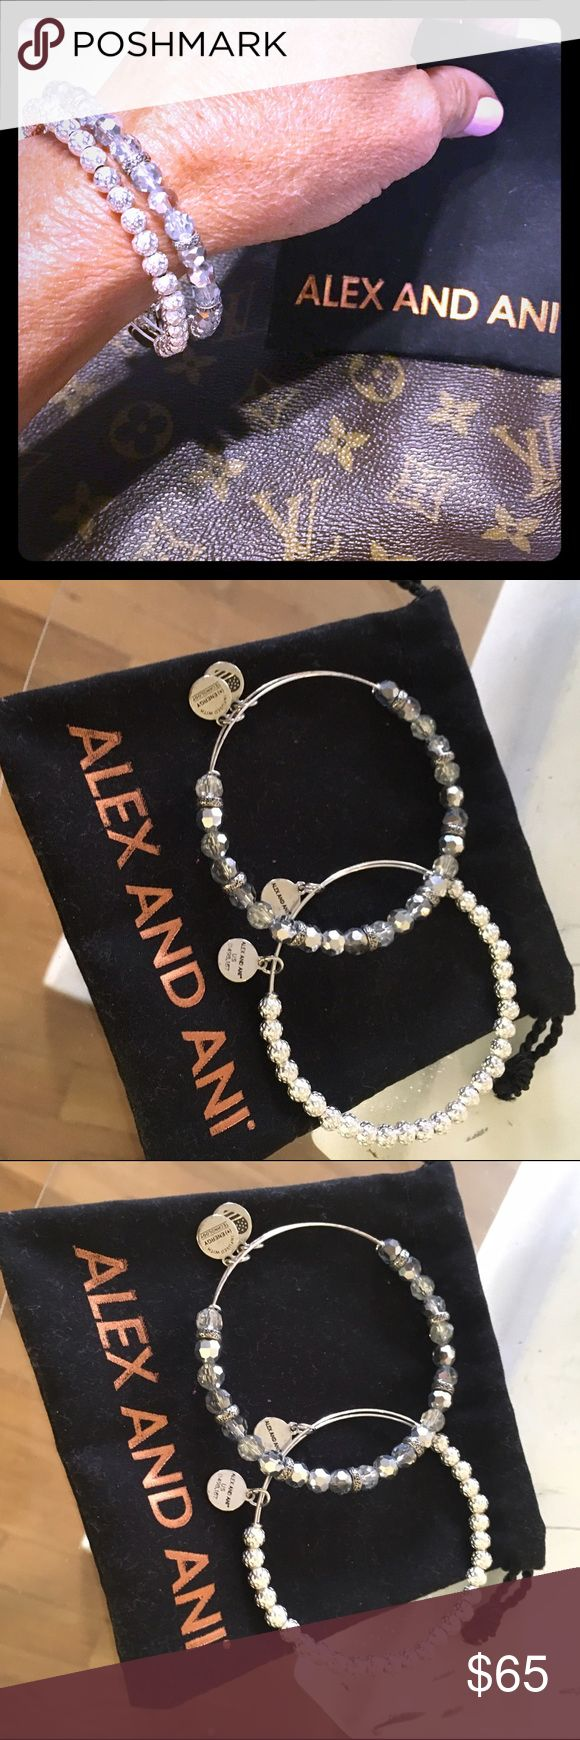 Alex and Ani vintage rare Swarovski bracelets Alex and Ani rare vintage bracelets with Alex and Ani pouch. Both silver one is with crystallize beads and the other with Swarovski crystal beads. Both adjust to your hands. 2 rare bracelets and pouch retails 60 each. Pay one price for both. Sorry selling them together. Bundle and save 15% off Alex & Ani Jewelry Bracelets